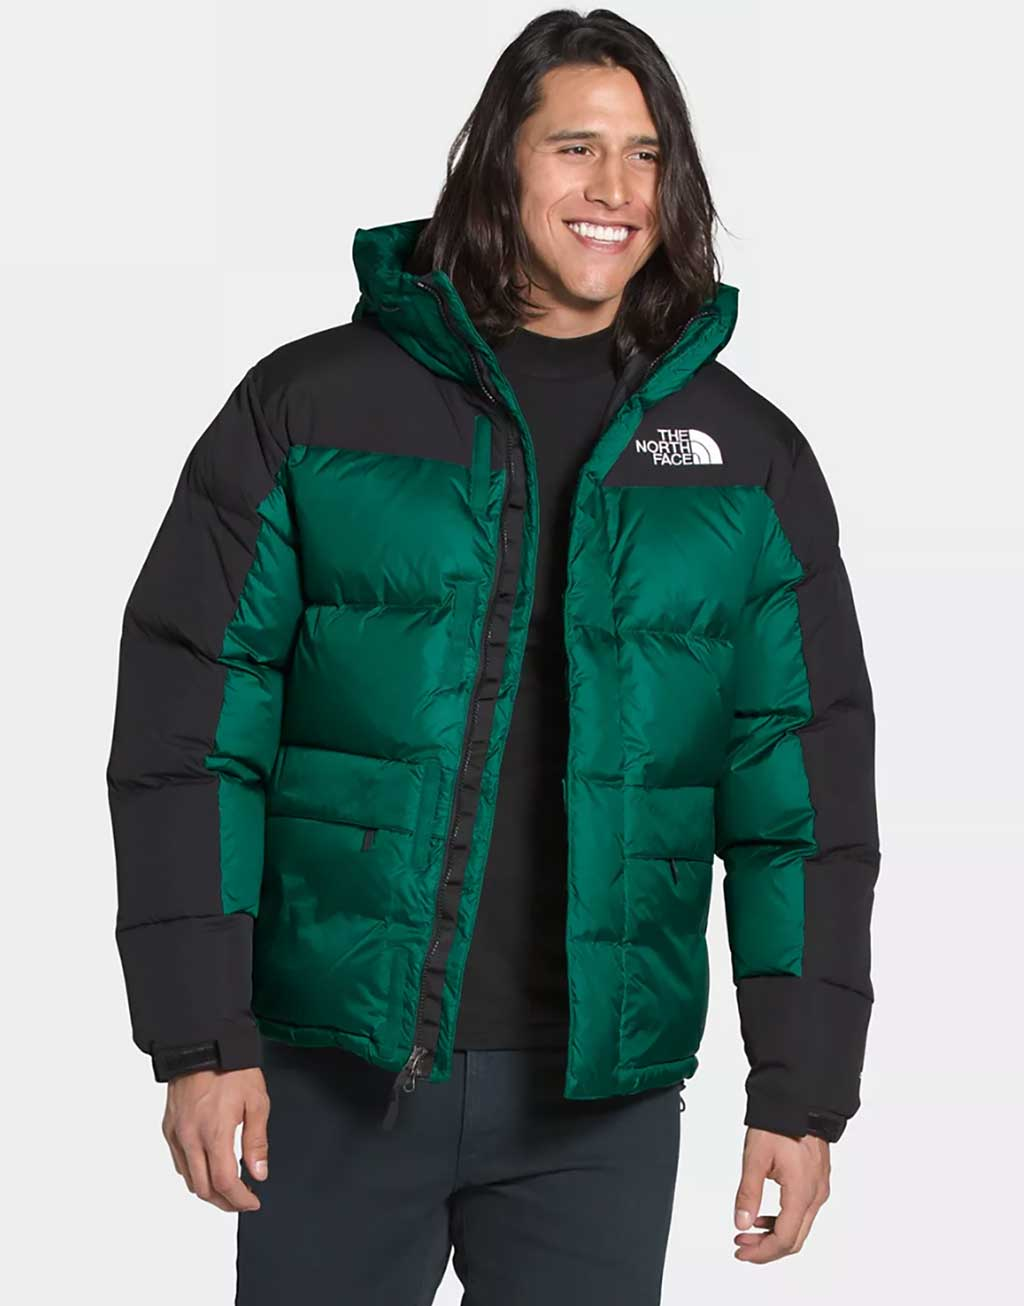 The Best North Face Jackets 12